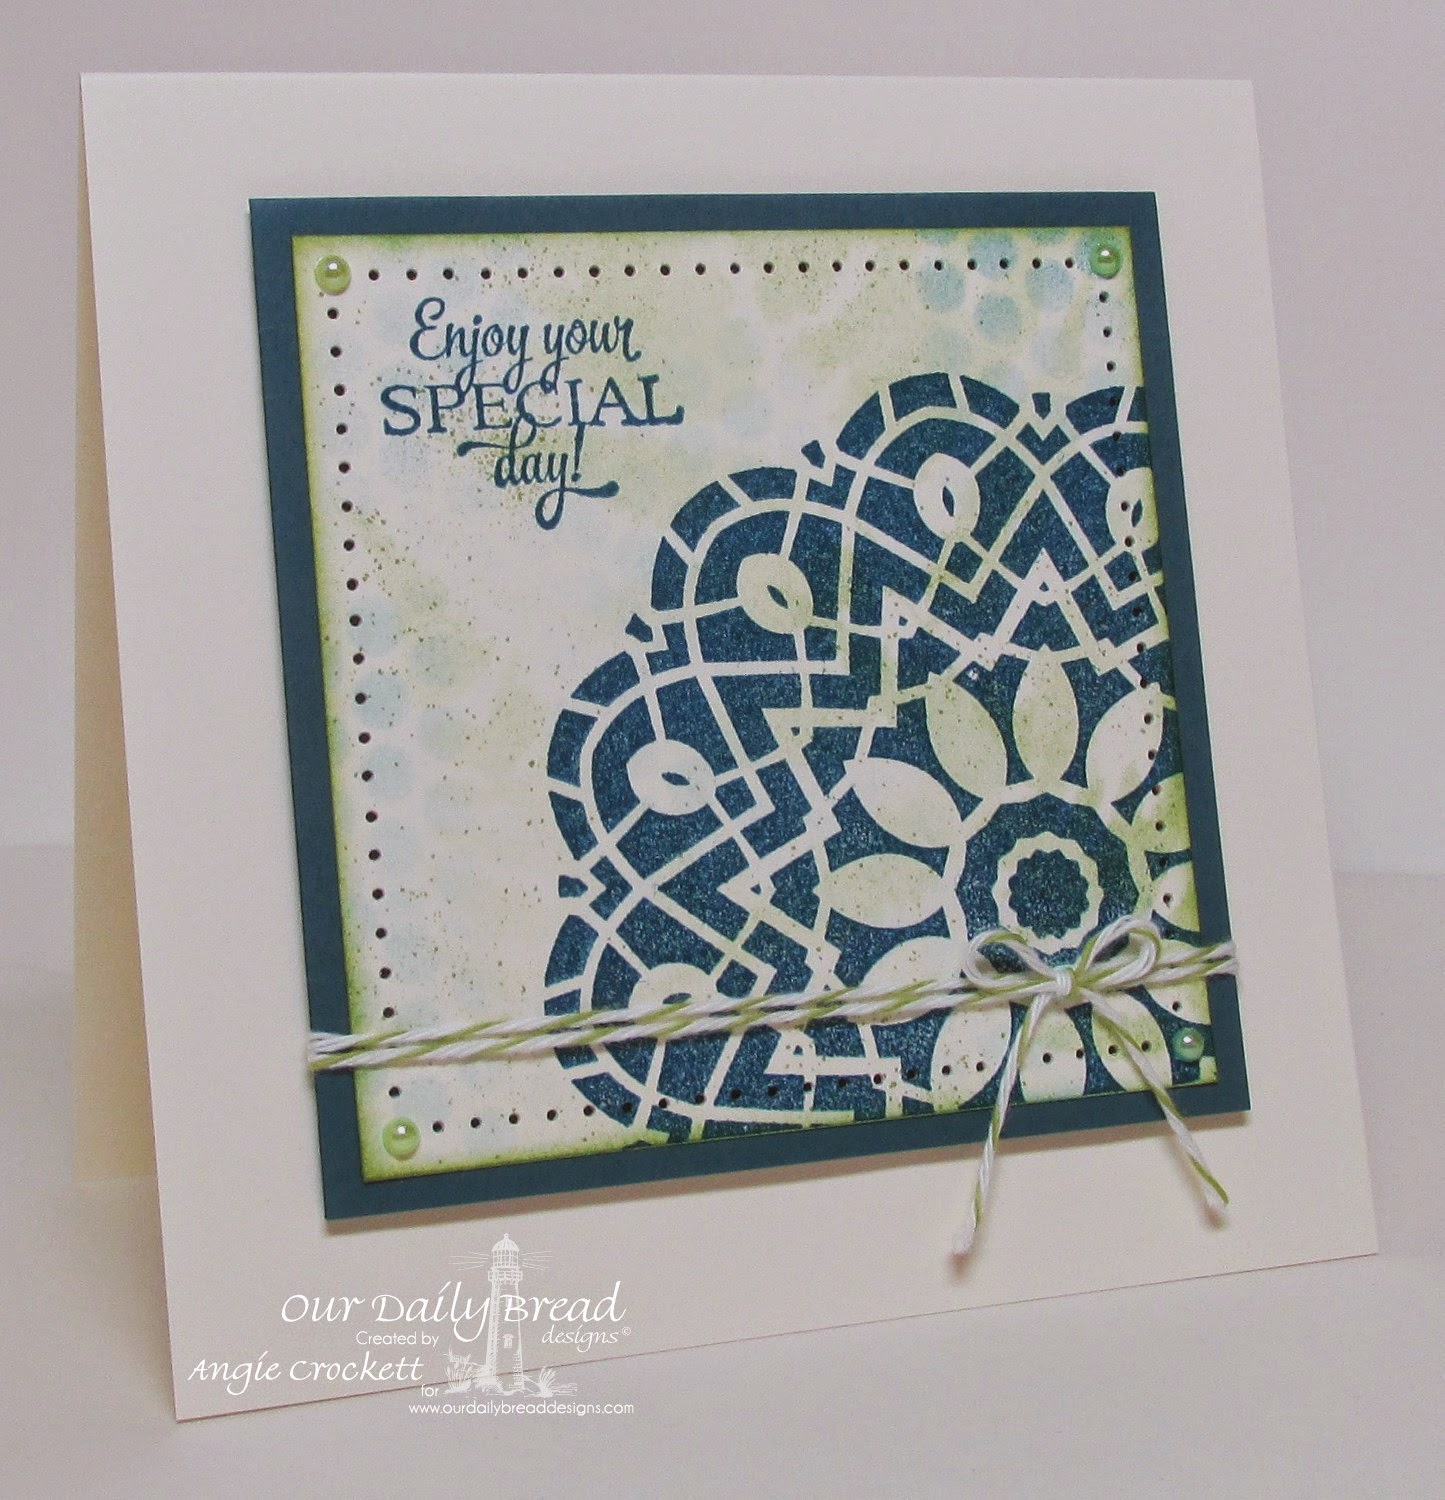 ODBD Birthday Doily, Card Designer Angie Crockett